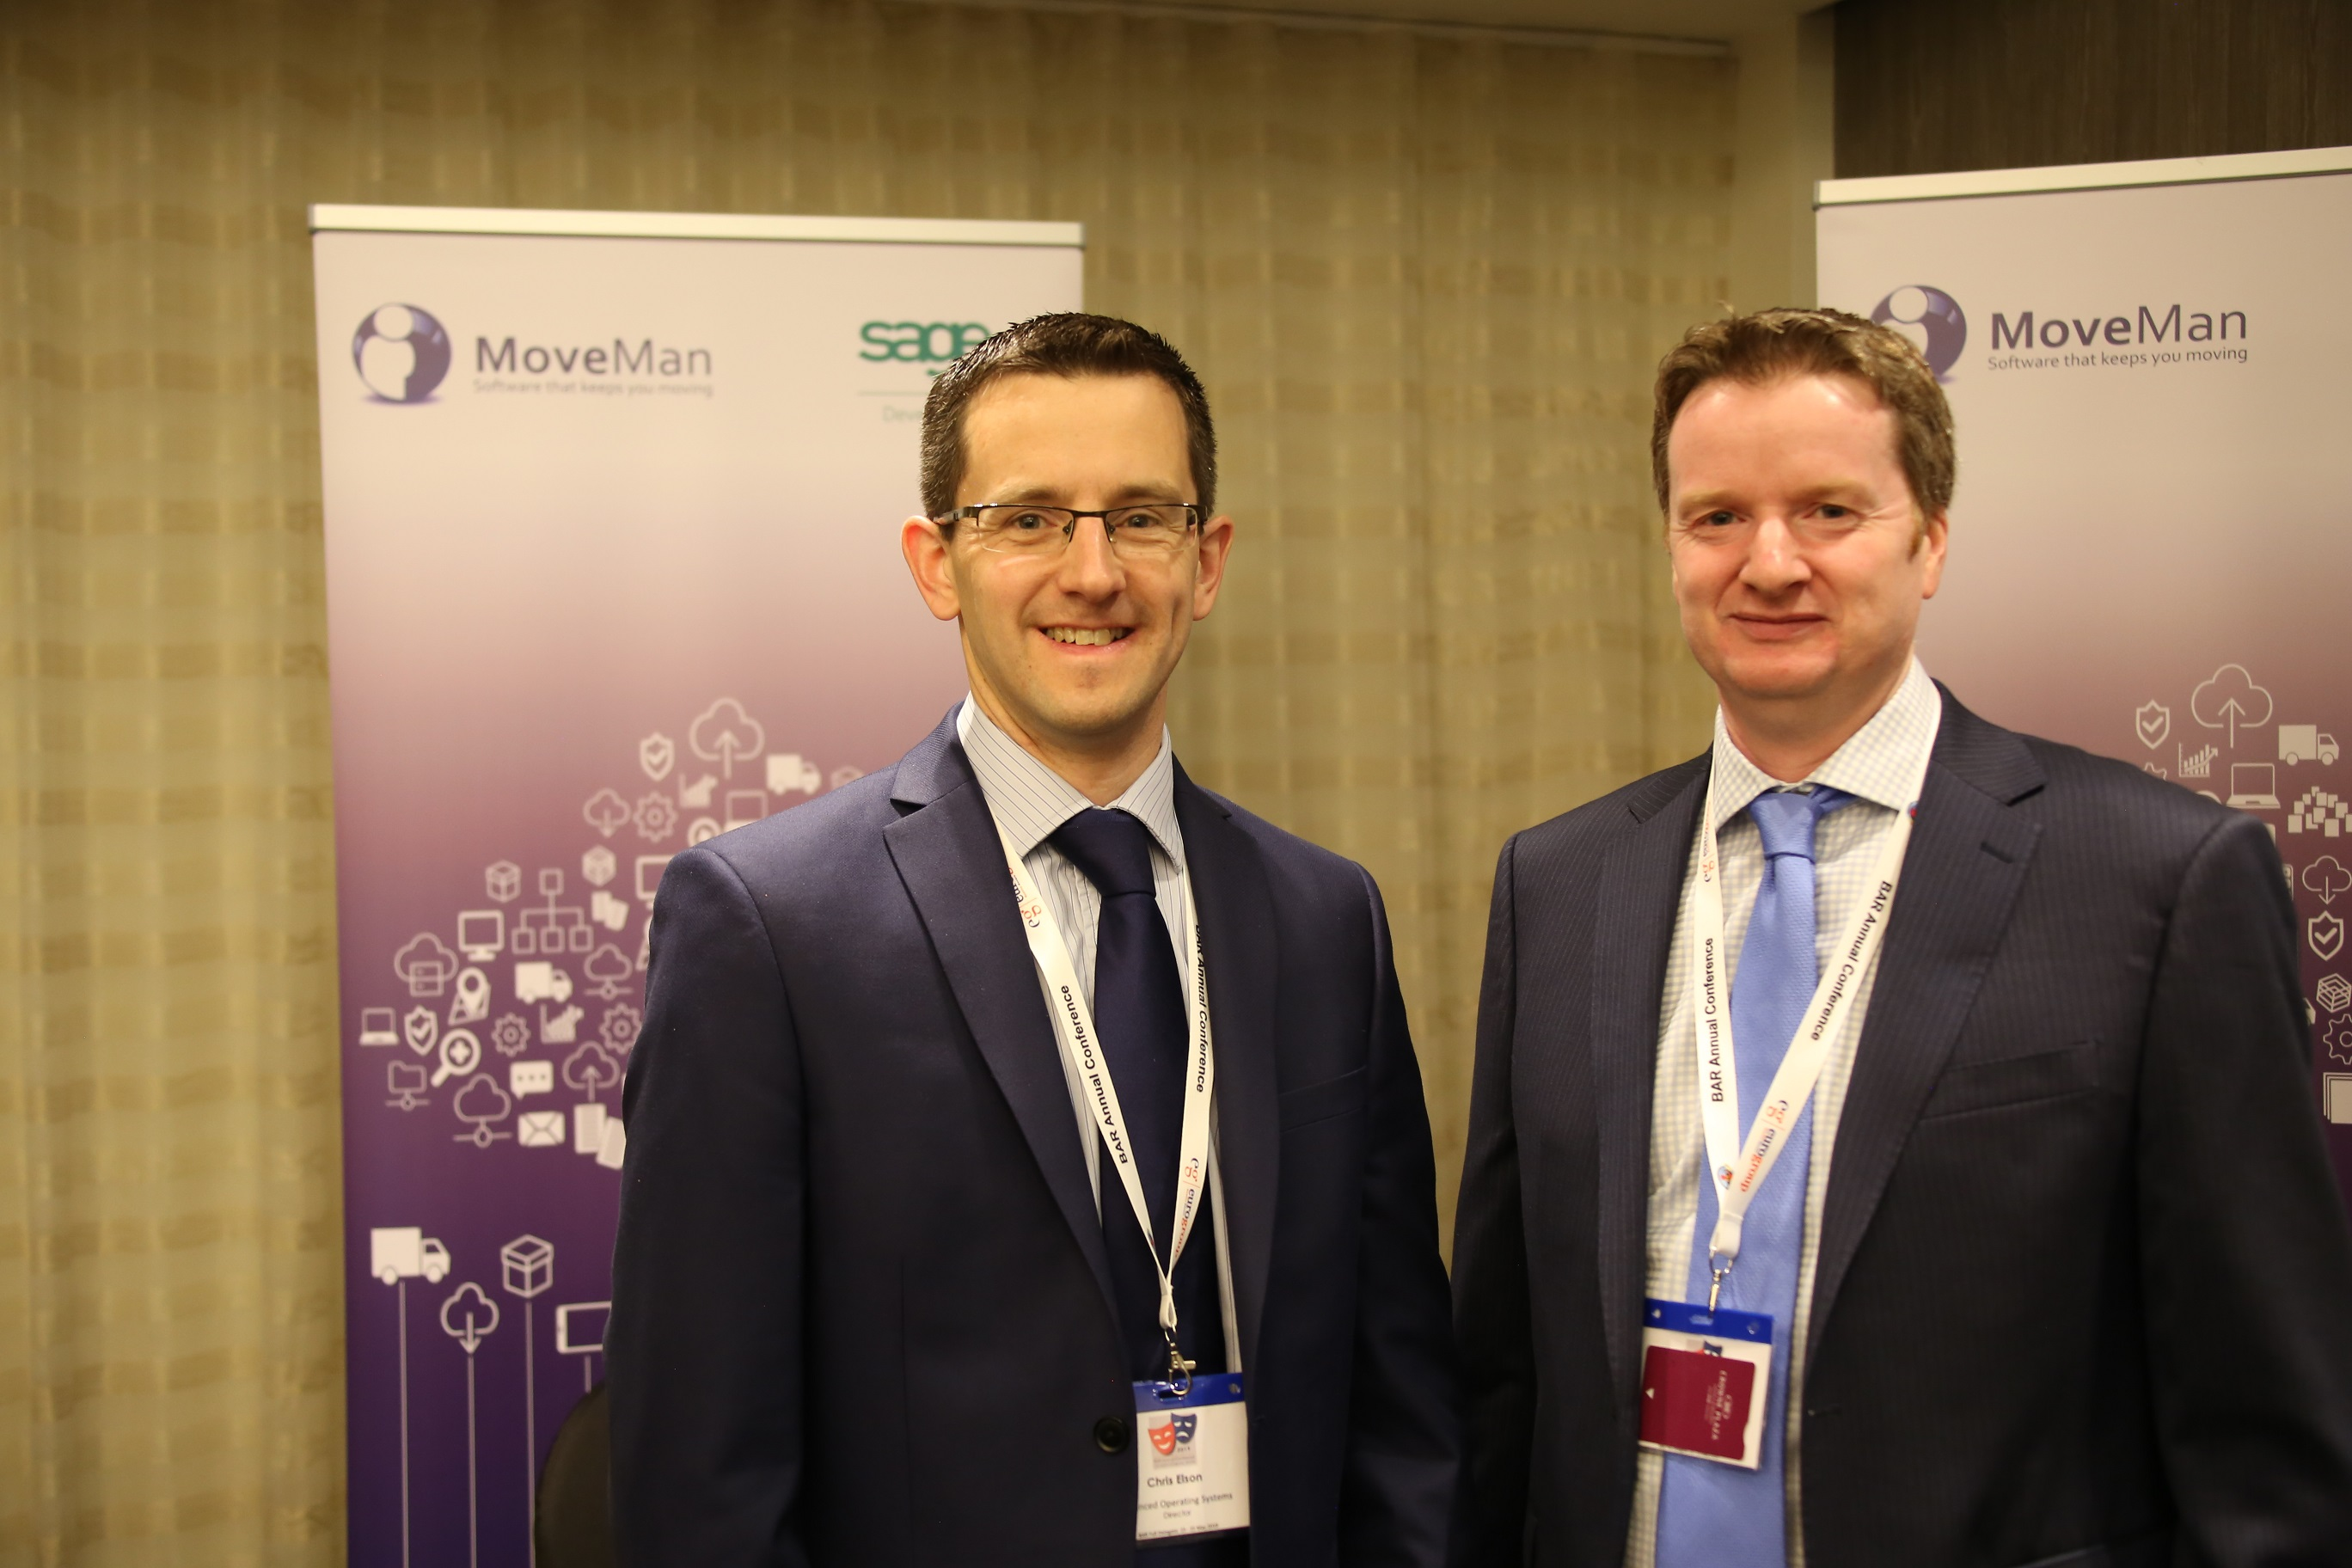 Chris Elson (left) and Simon Maystre from Moveman